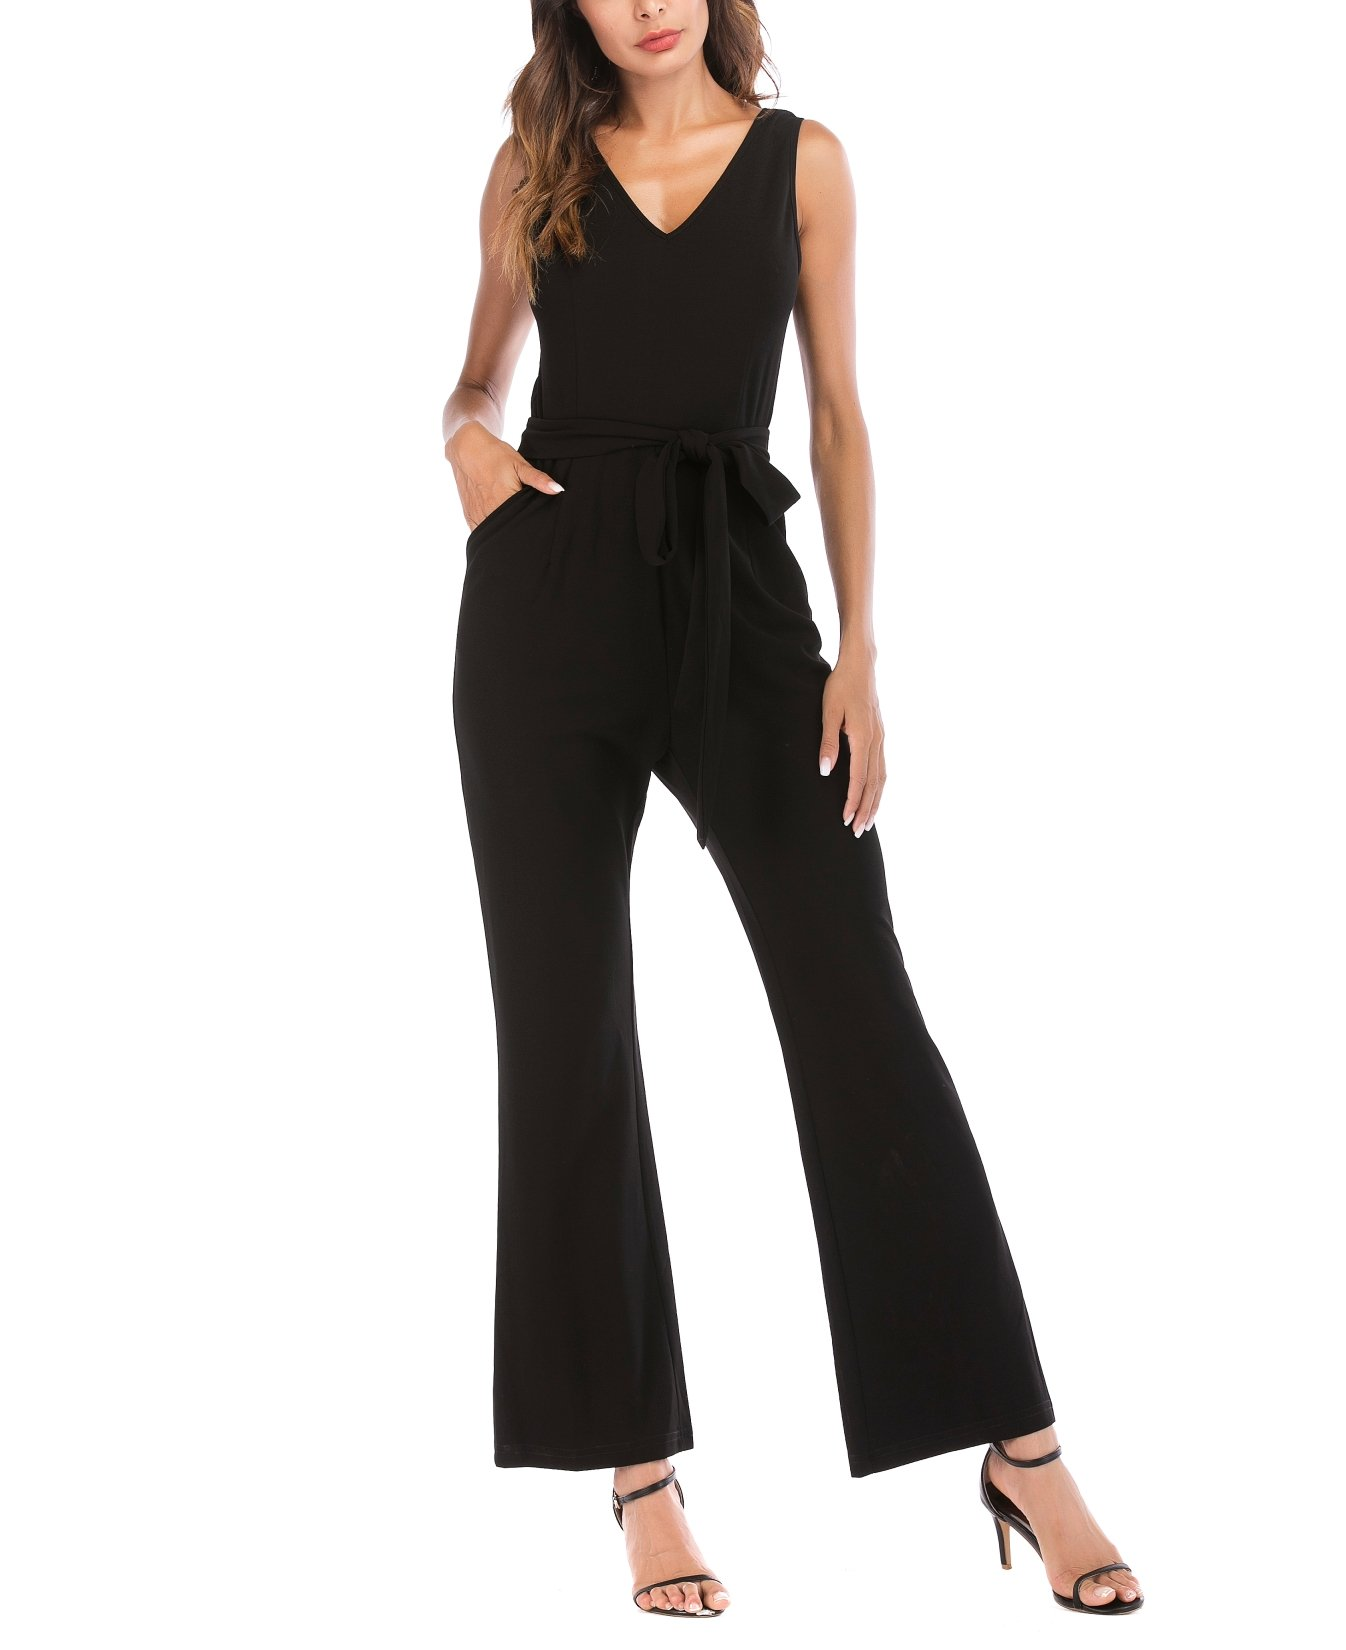 SUNNOW Women V Neck Jumpsuit Sleeveless High Waist Long Overalls Elegant Romper (S(US4-6), Black)